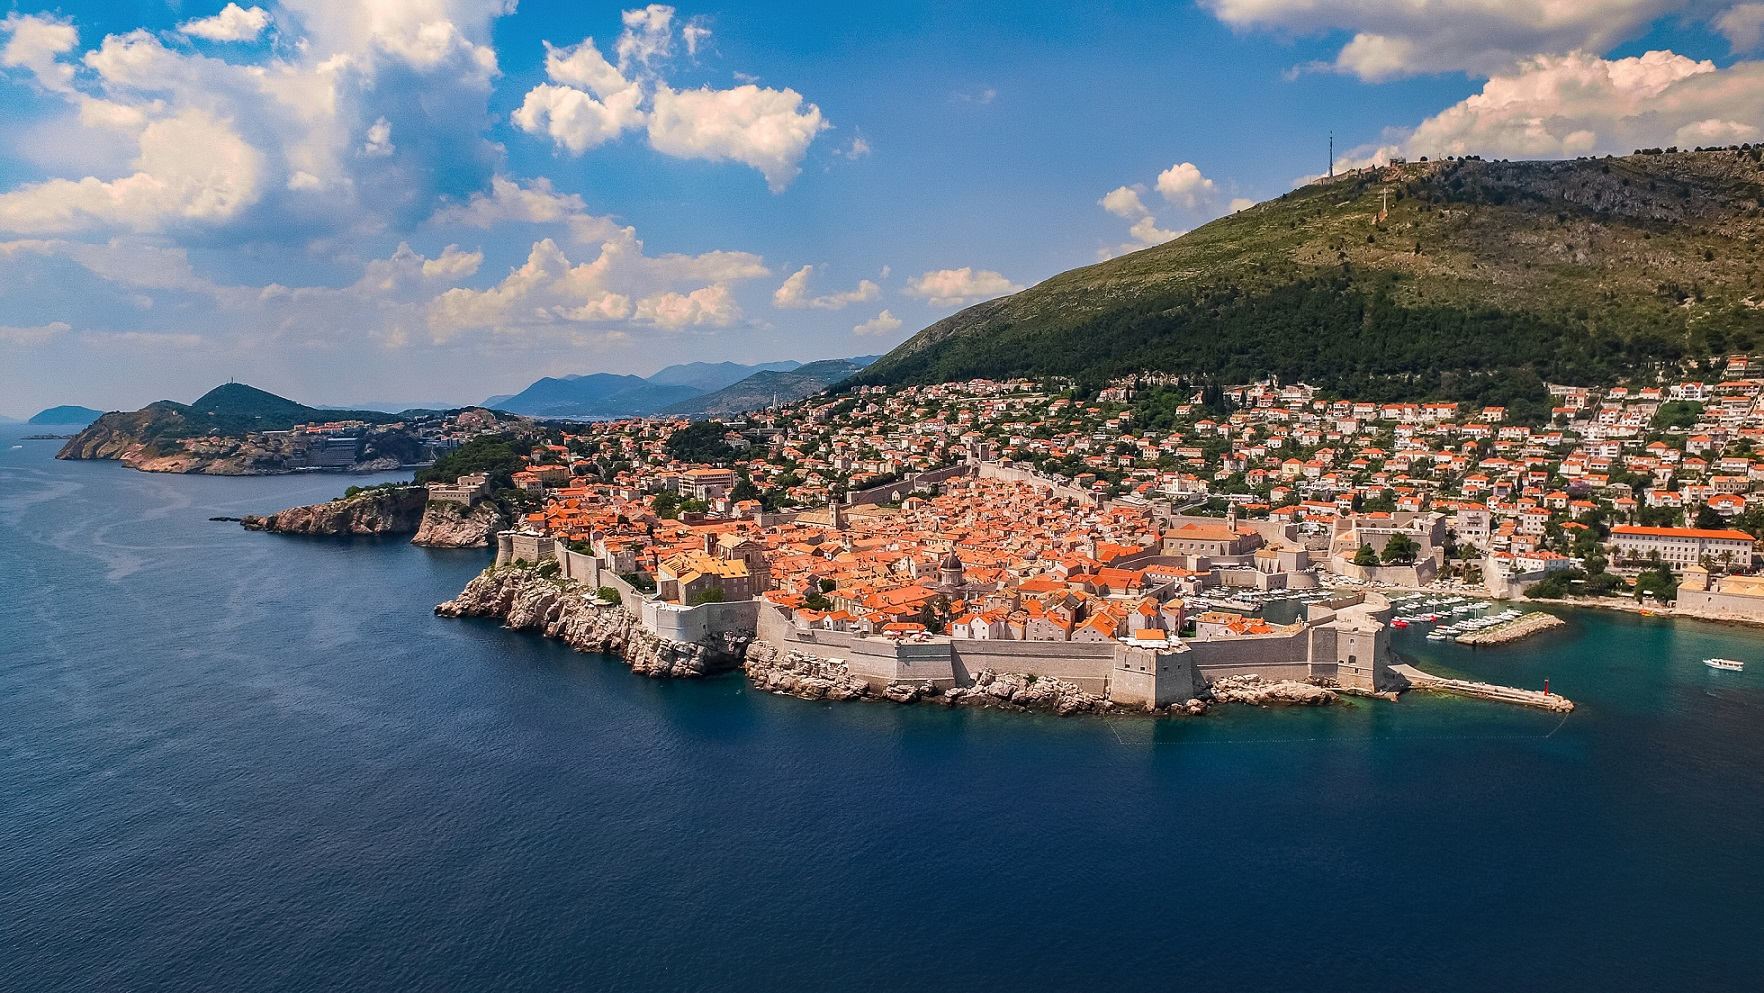 Dubrovnik Credit Ivo Biocina Croatian National Tourist Board 2